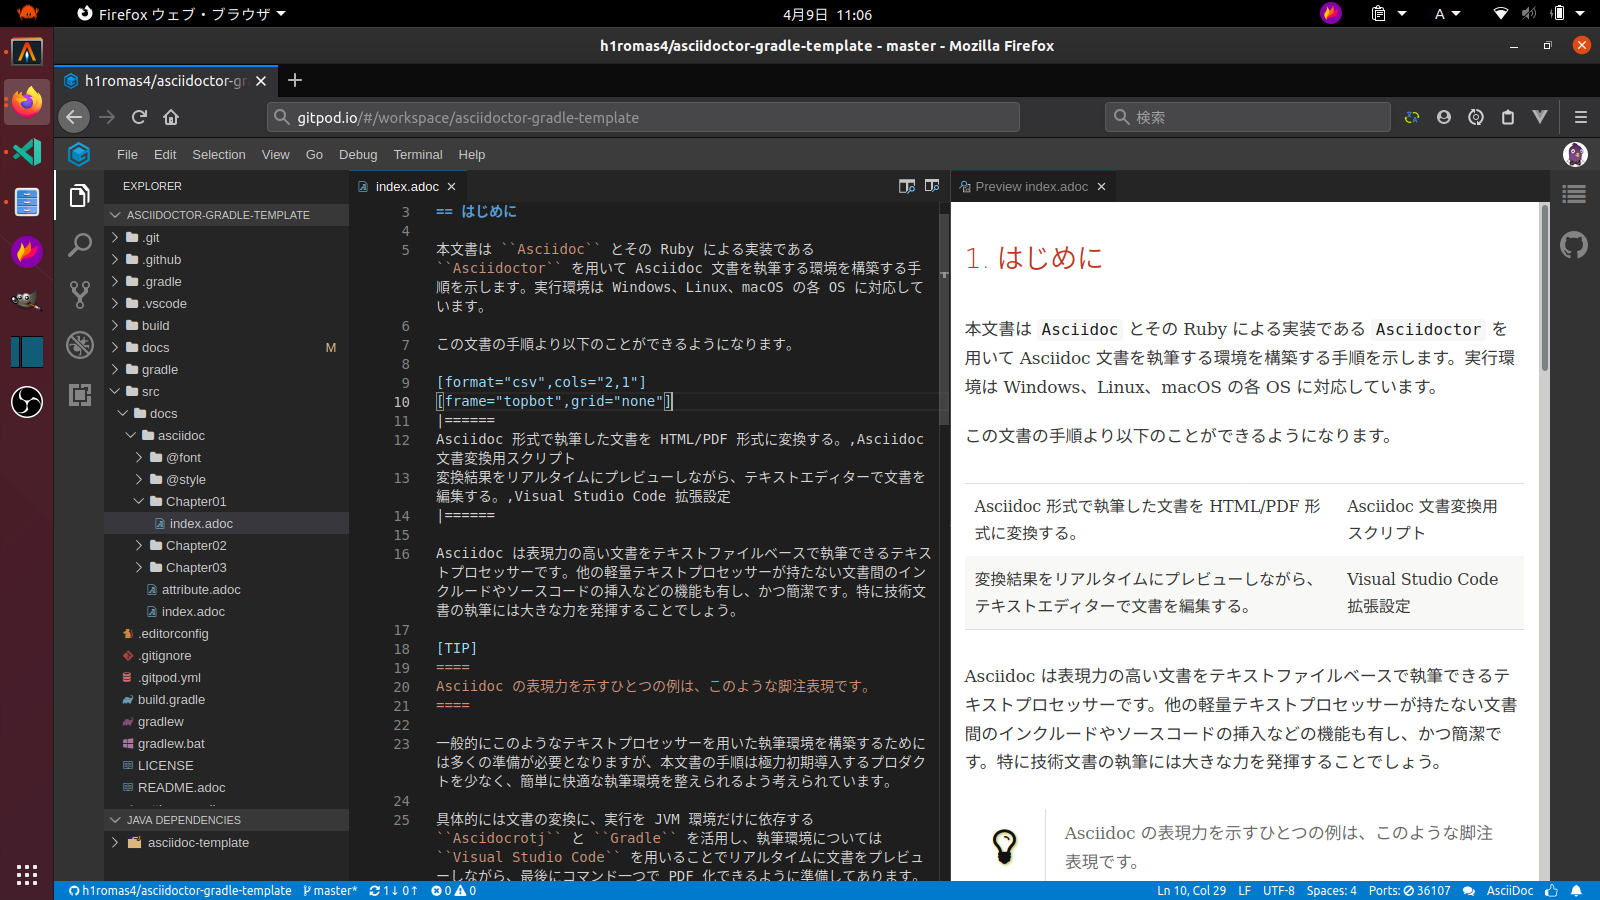 Screenshot from 2020-04-09 11-06-49.png